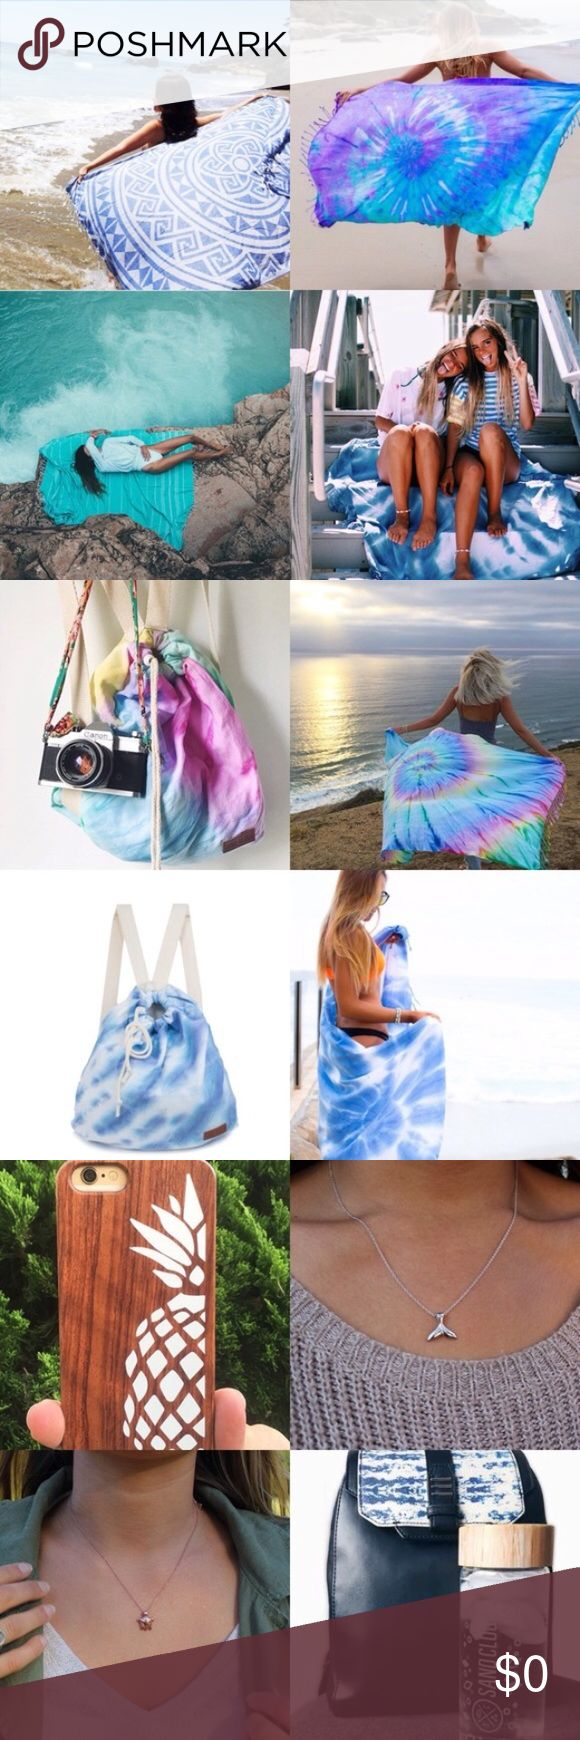 Selling this 25%off Sandcloud DISCOUNT! Preserve marine life!!! on Poshmark! My username is: hypergymnast. #shopmycloset #poshmark #fashion #shopping #style #forsale #Sand Cloud #Other